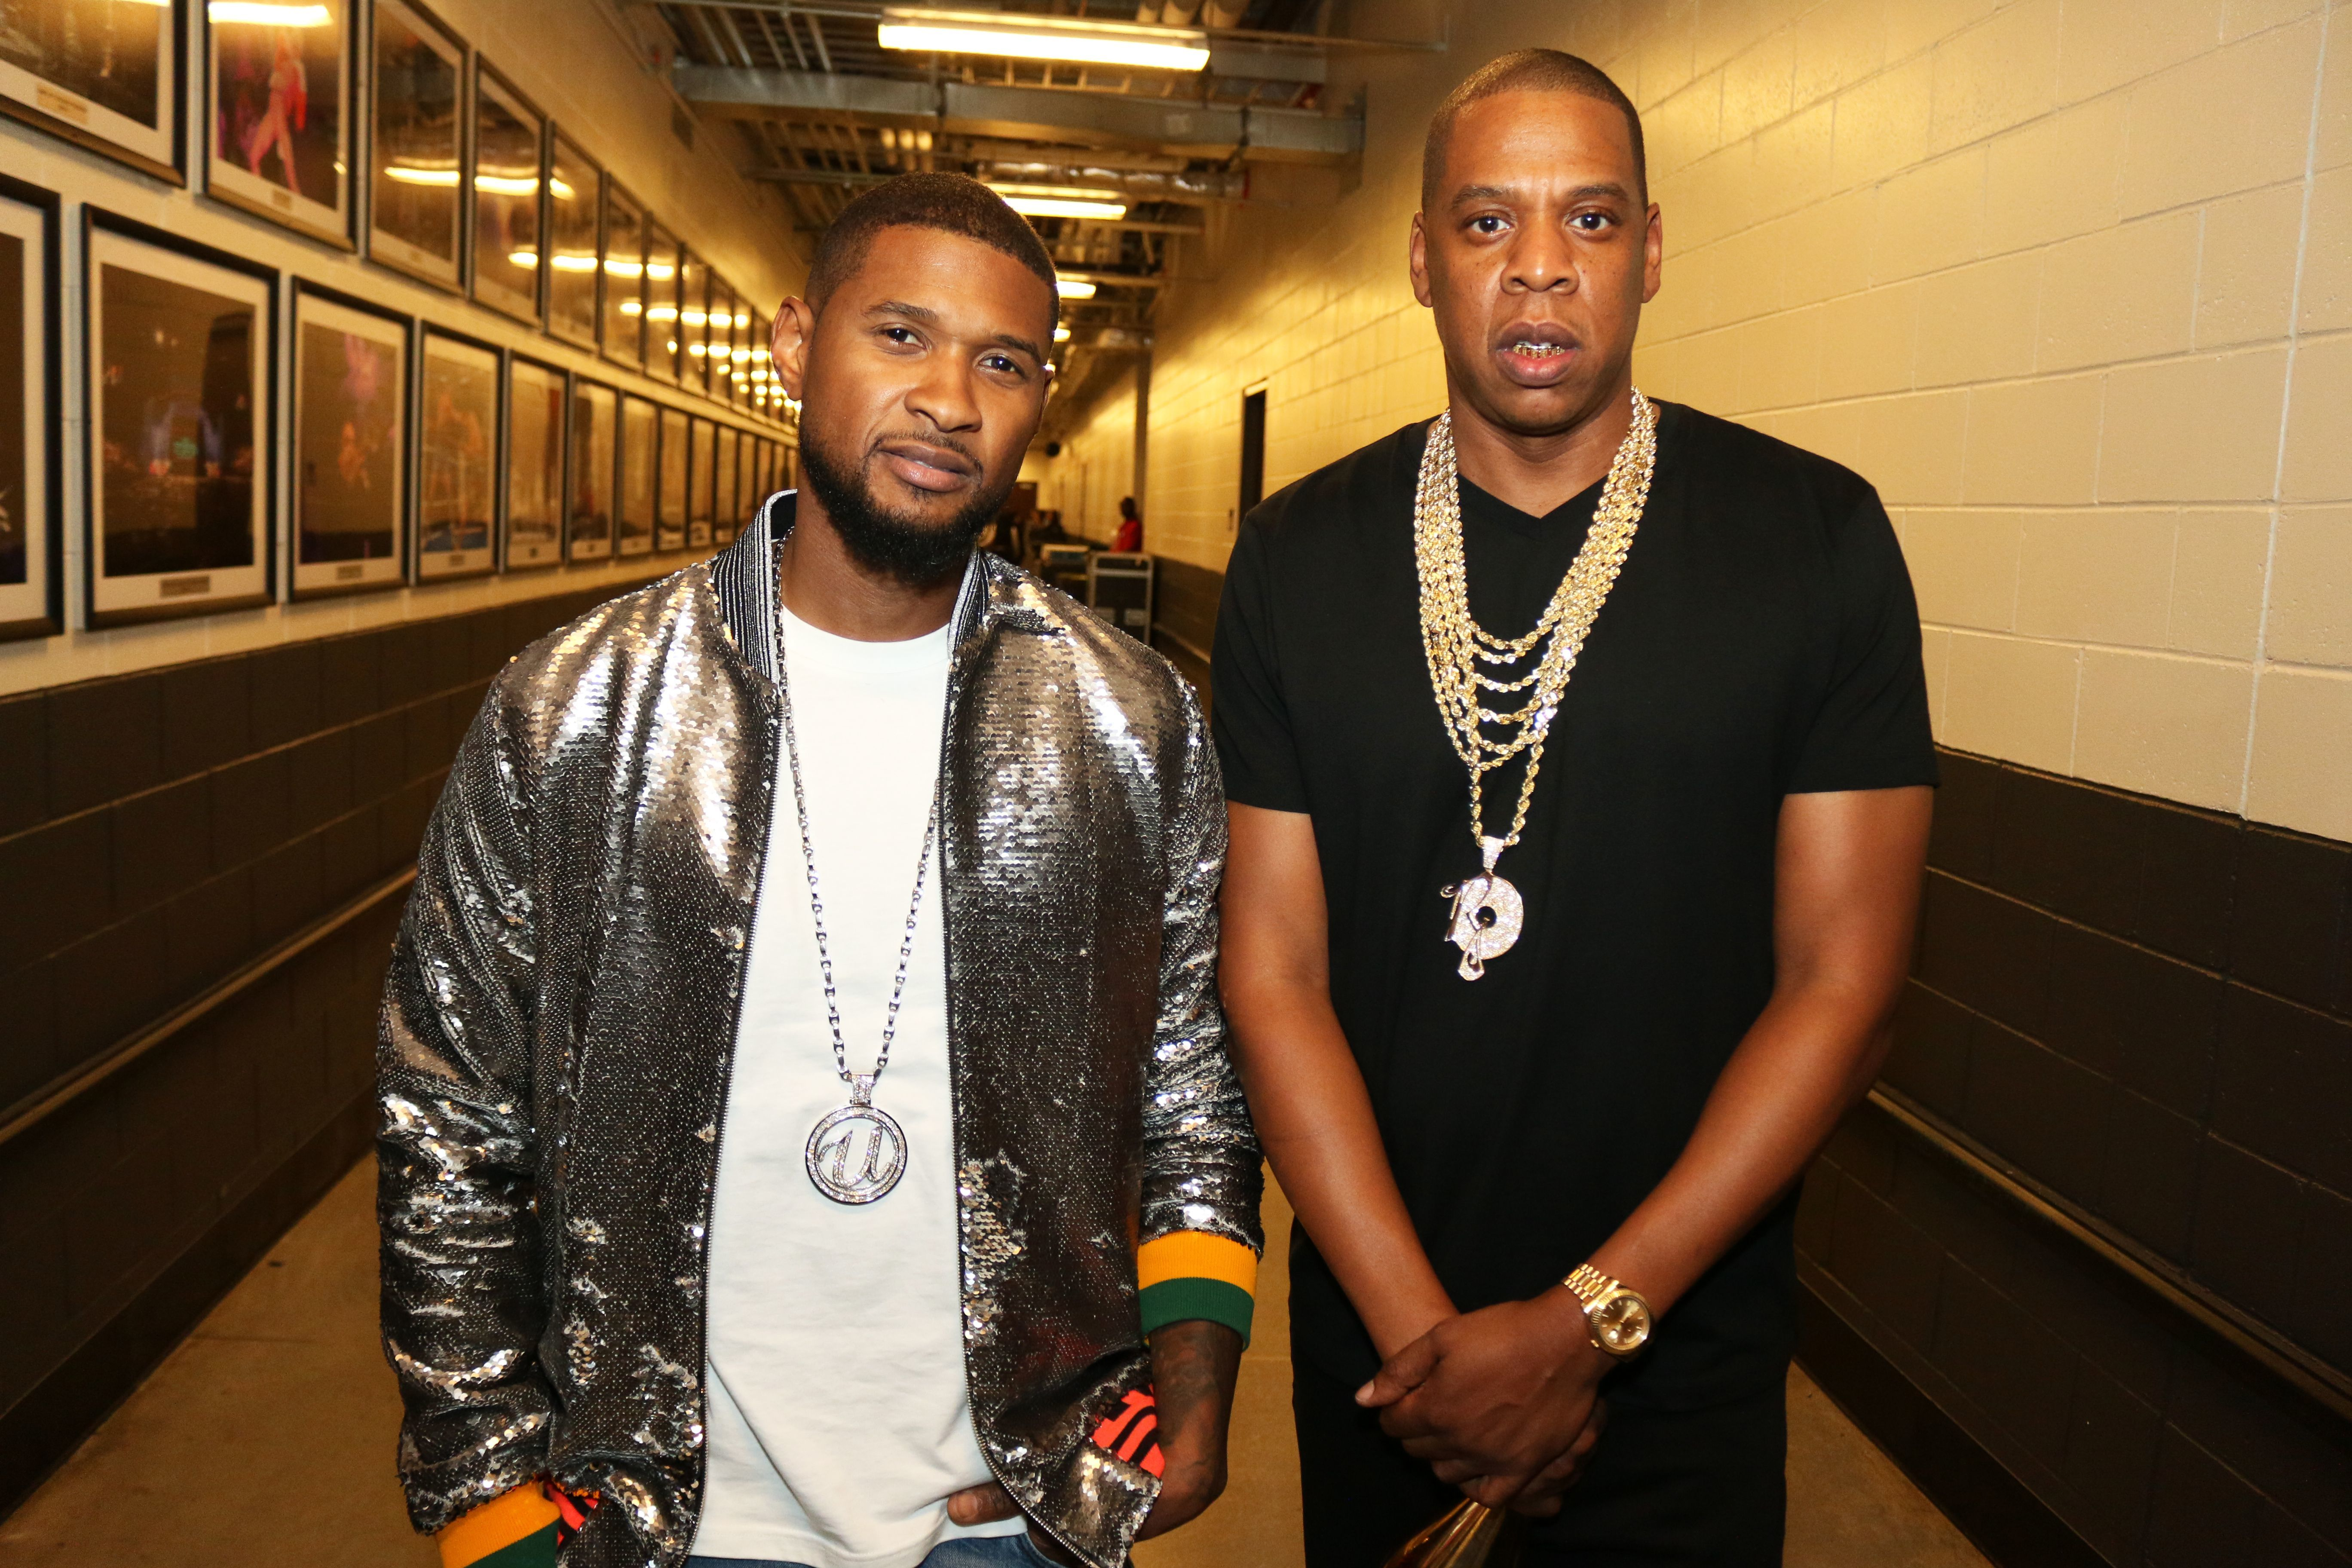 Usher and JAY Z attend the Bad Boy Reunion concert in New York on May 20, 2016.